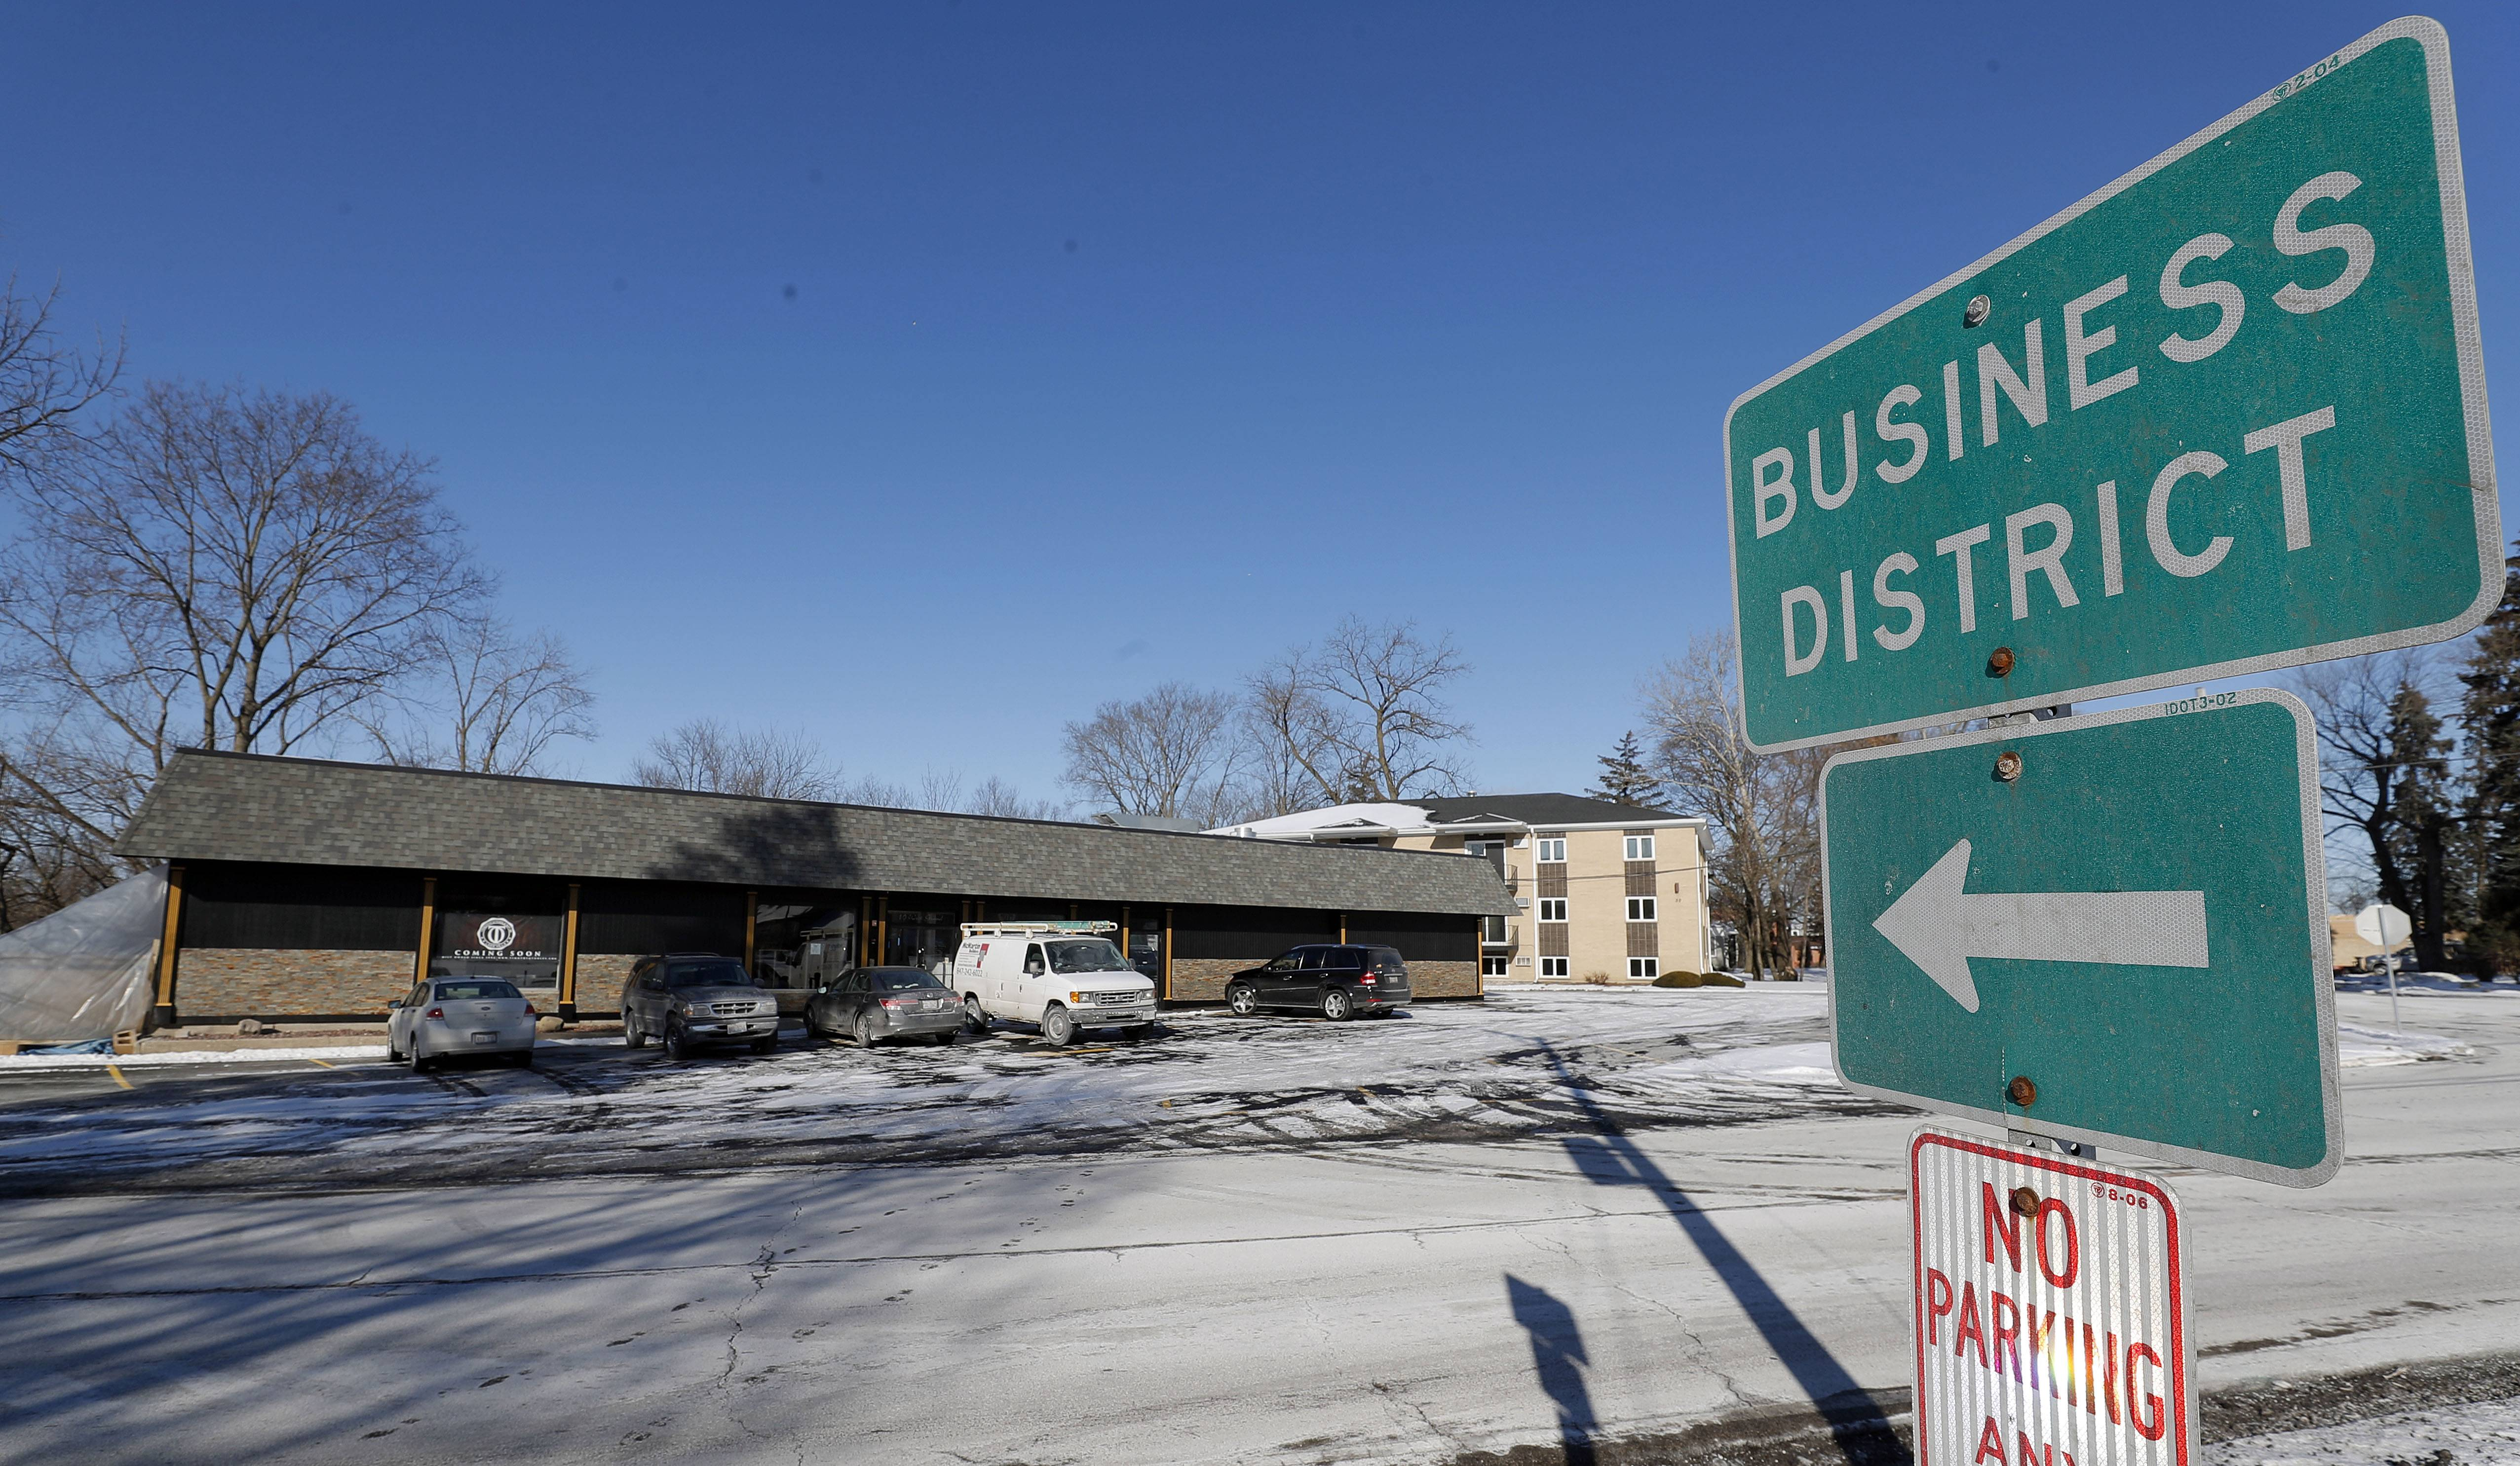 Lake Villa leaders hope incentives will help revive the downtown area, including building improvements for a Timothy O'Toole's restaurant to replace the former Blackthorn Grille.